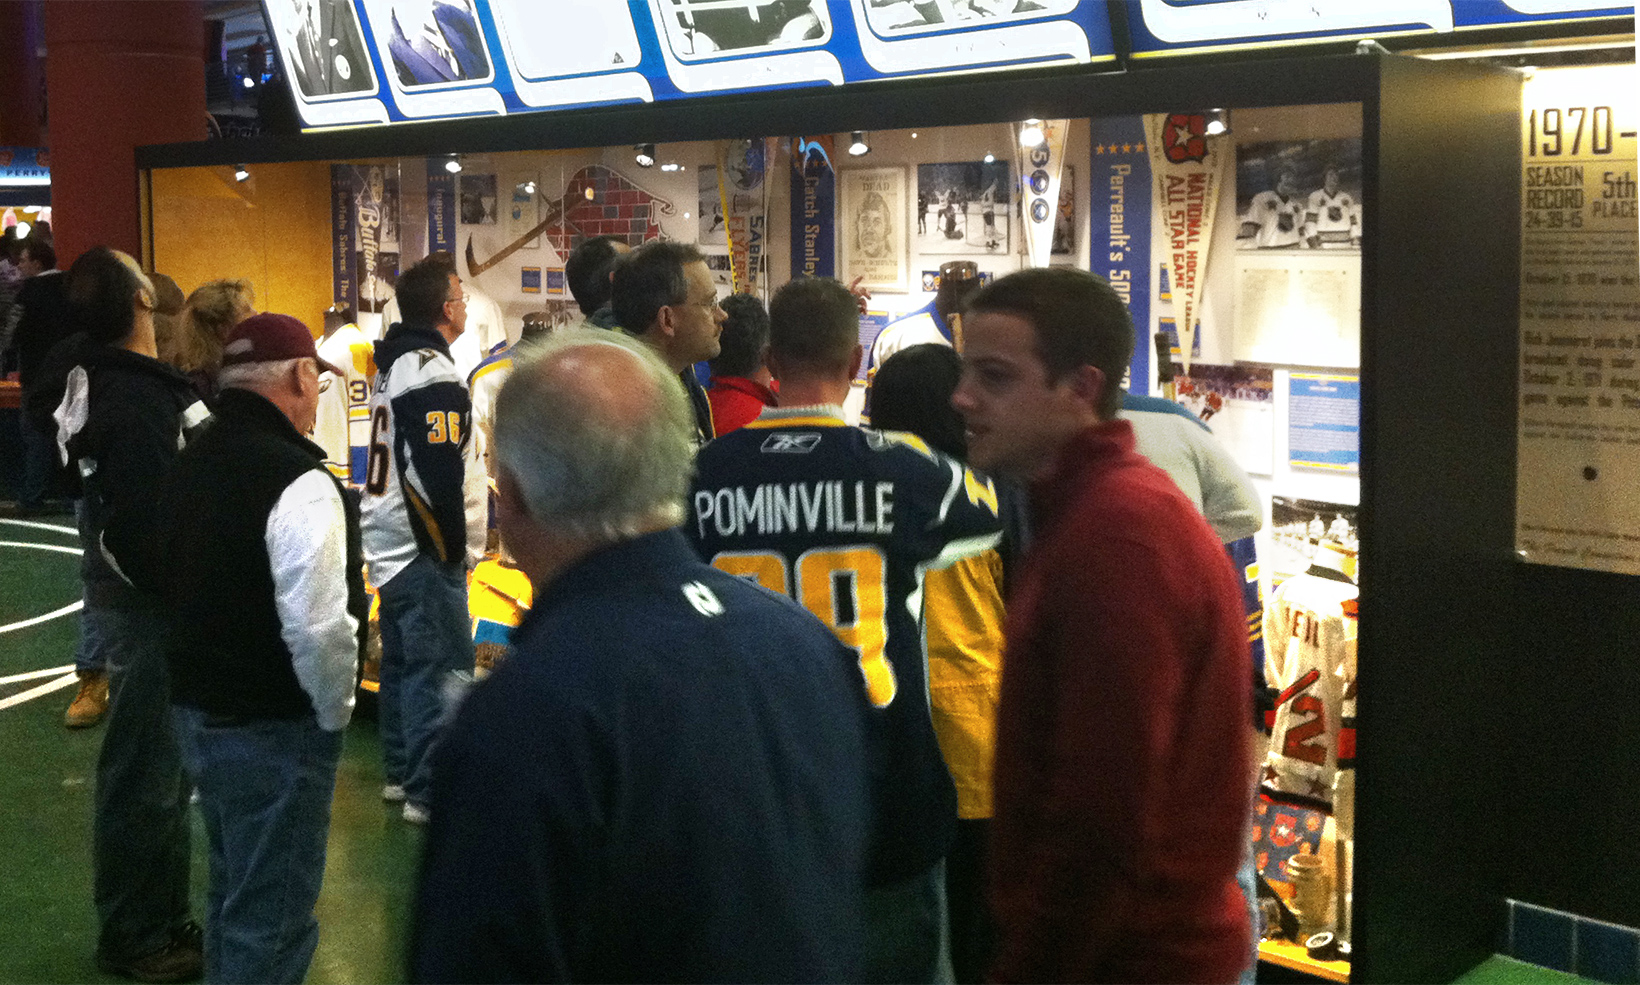 The Sabres 40th Anniversary public exhibit opens to excited fans